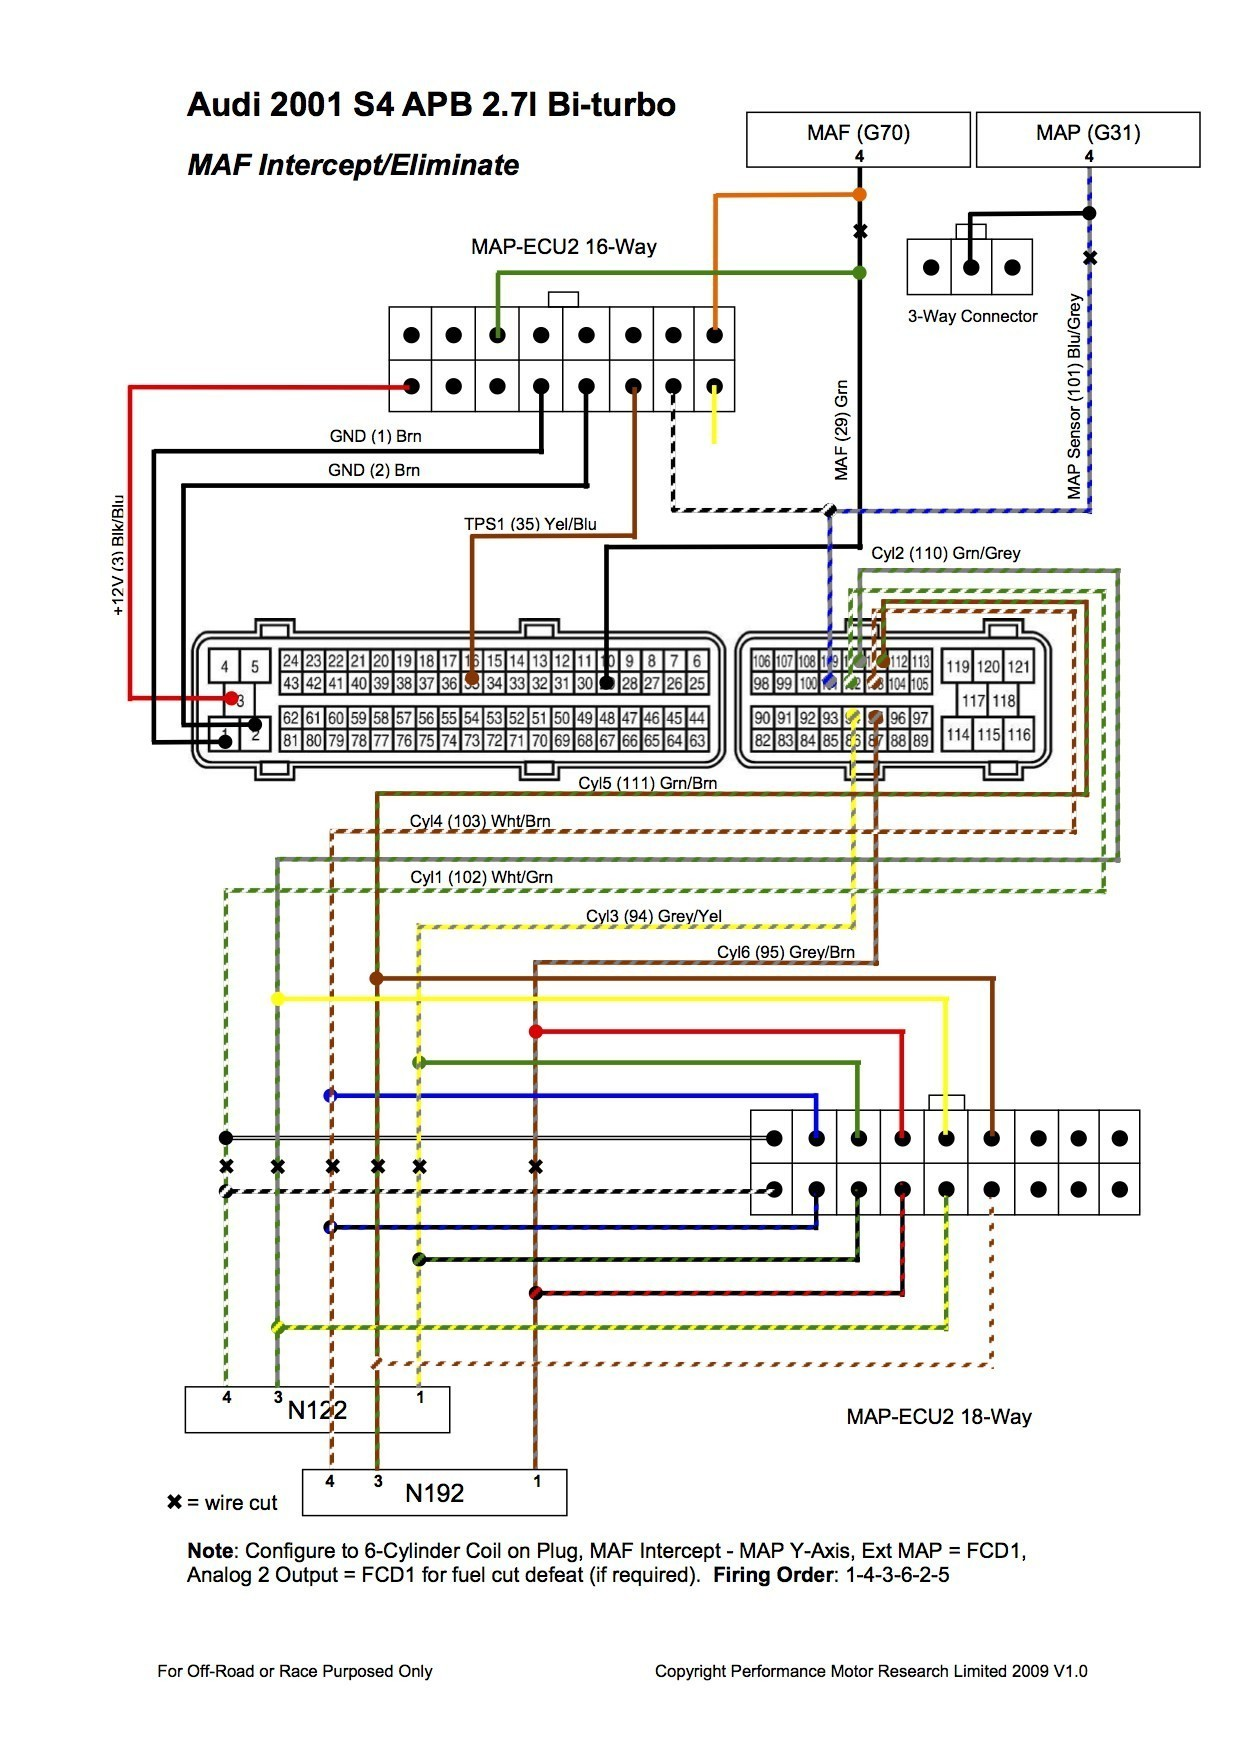 Mitsubishi Lancer Radio Wiring Diagram Wiring Diagram for Mitsubishi Lancer  Glxi Fresh 1997 Mitsubishi Lancer